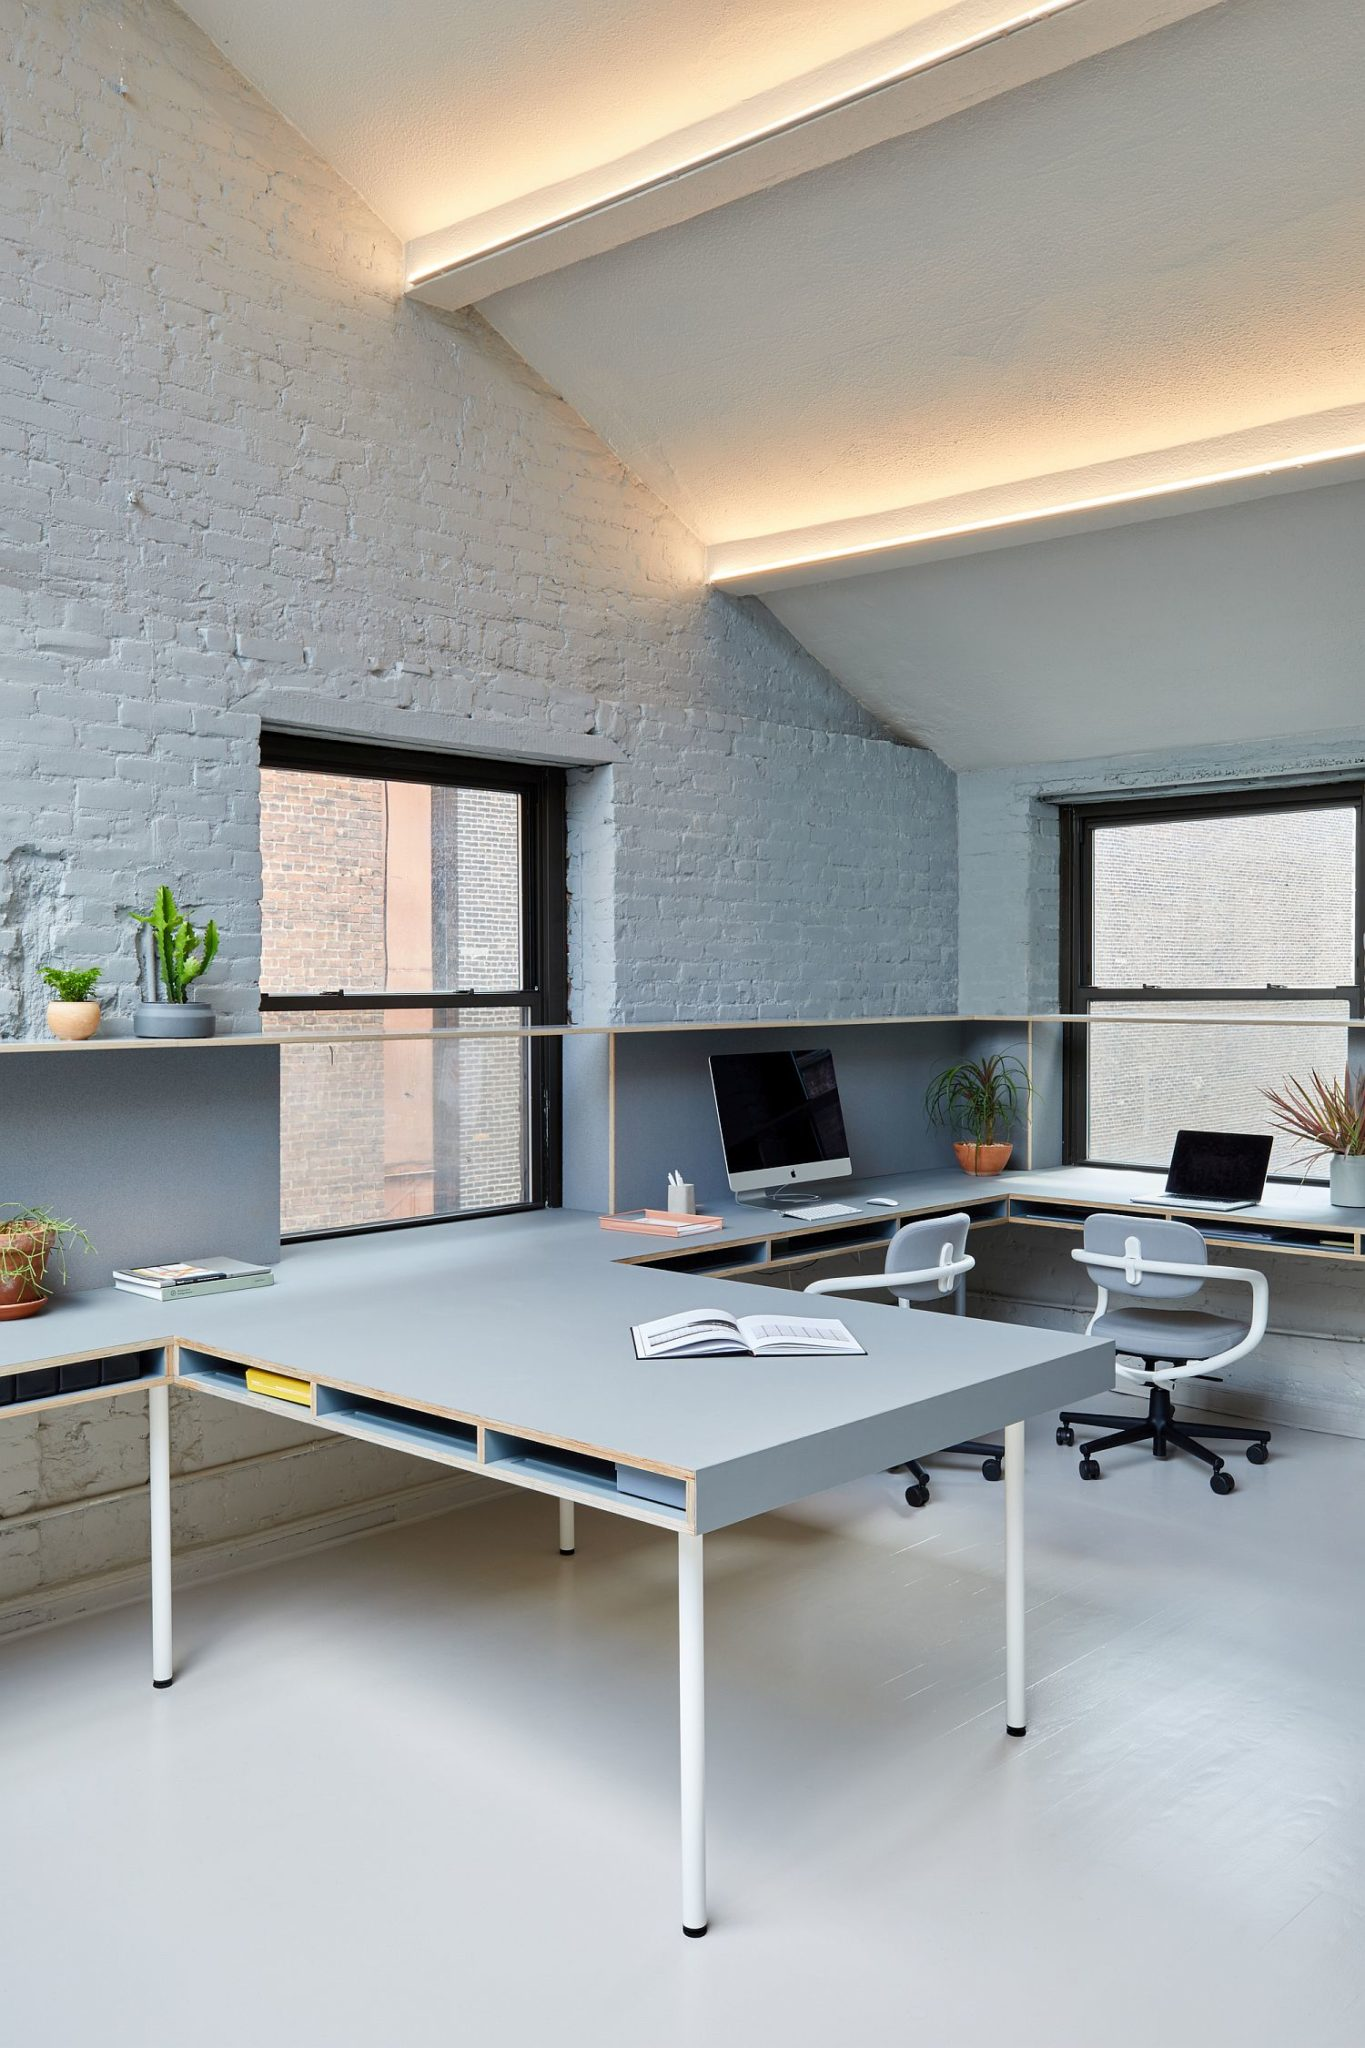 Smart lighting and sloped ceiling give the office a gorgeous look